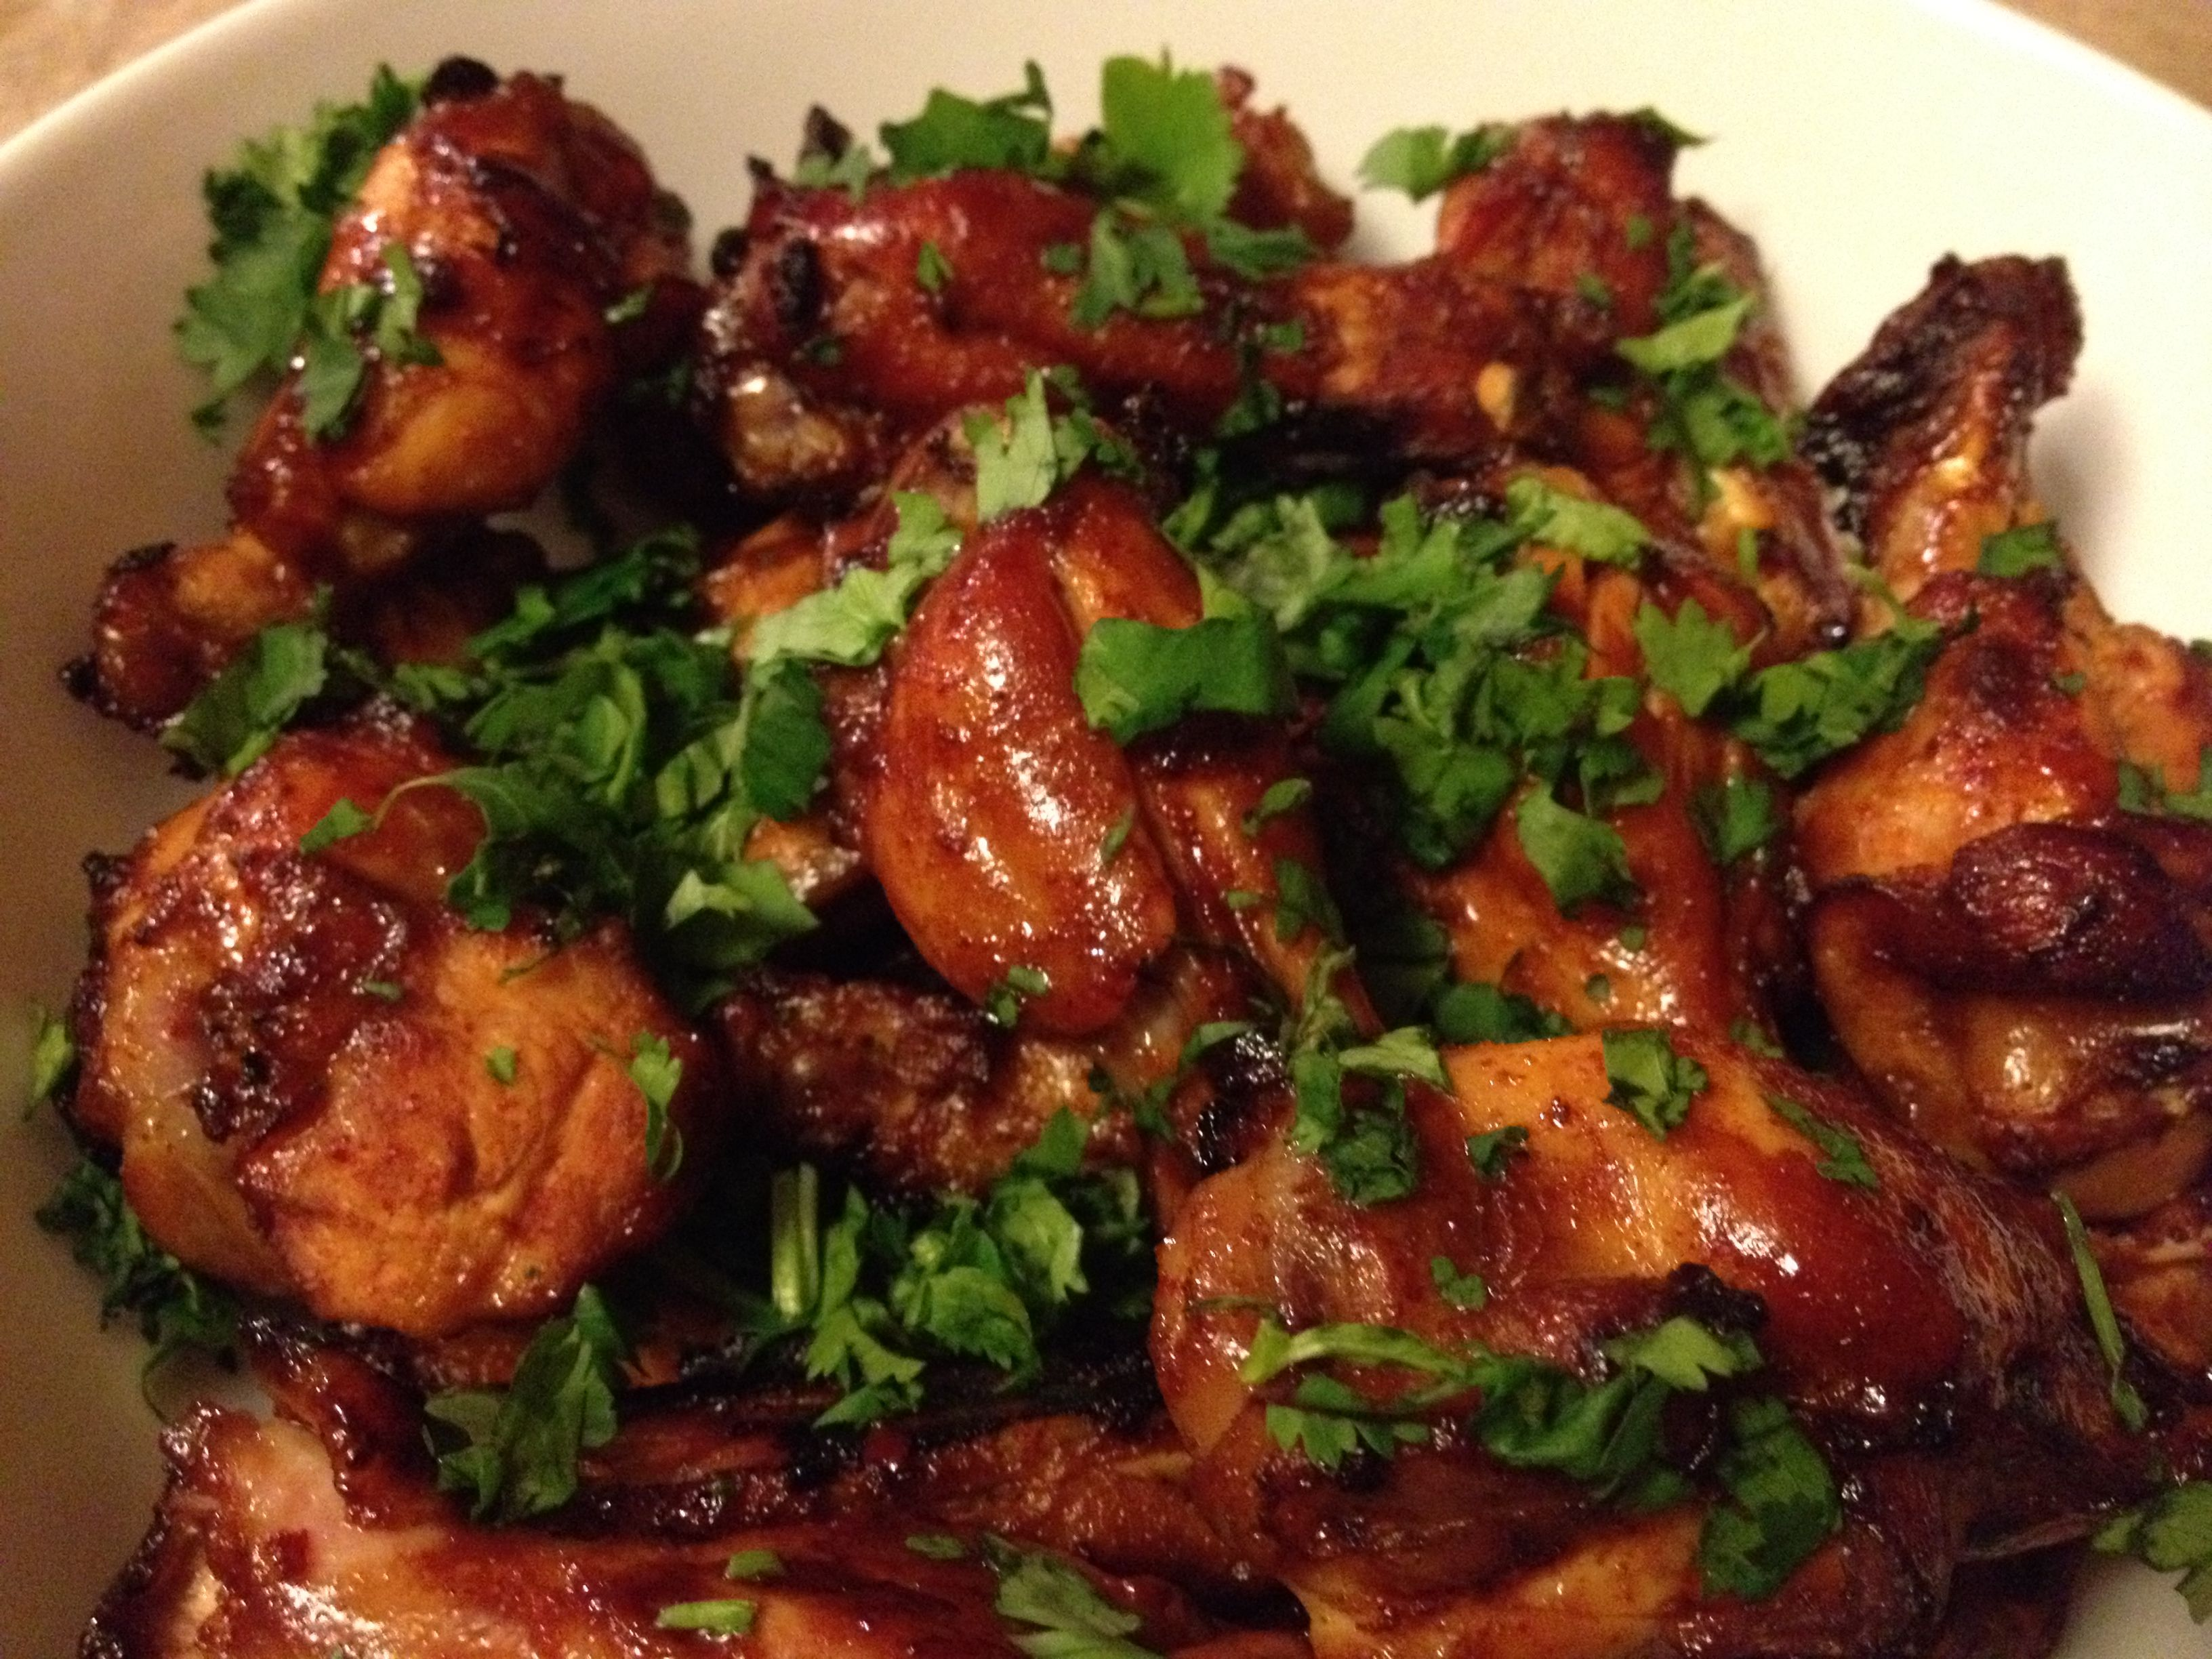 Dec 04,  · This recipe is for 'desi' style chicken wings so it will go really well on your Indian menu and especially when served with green chutney on the side. I do hope you enjoy making these chicken wings as part of your festive peers.mlgs: 4.